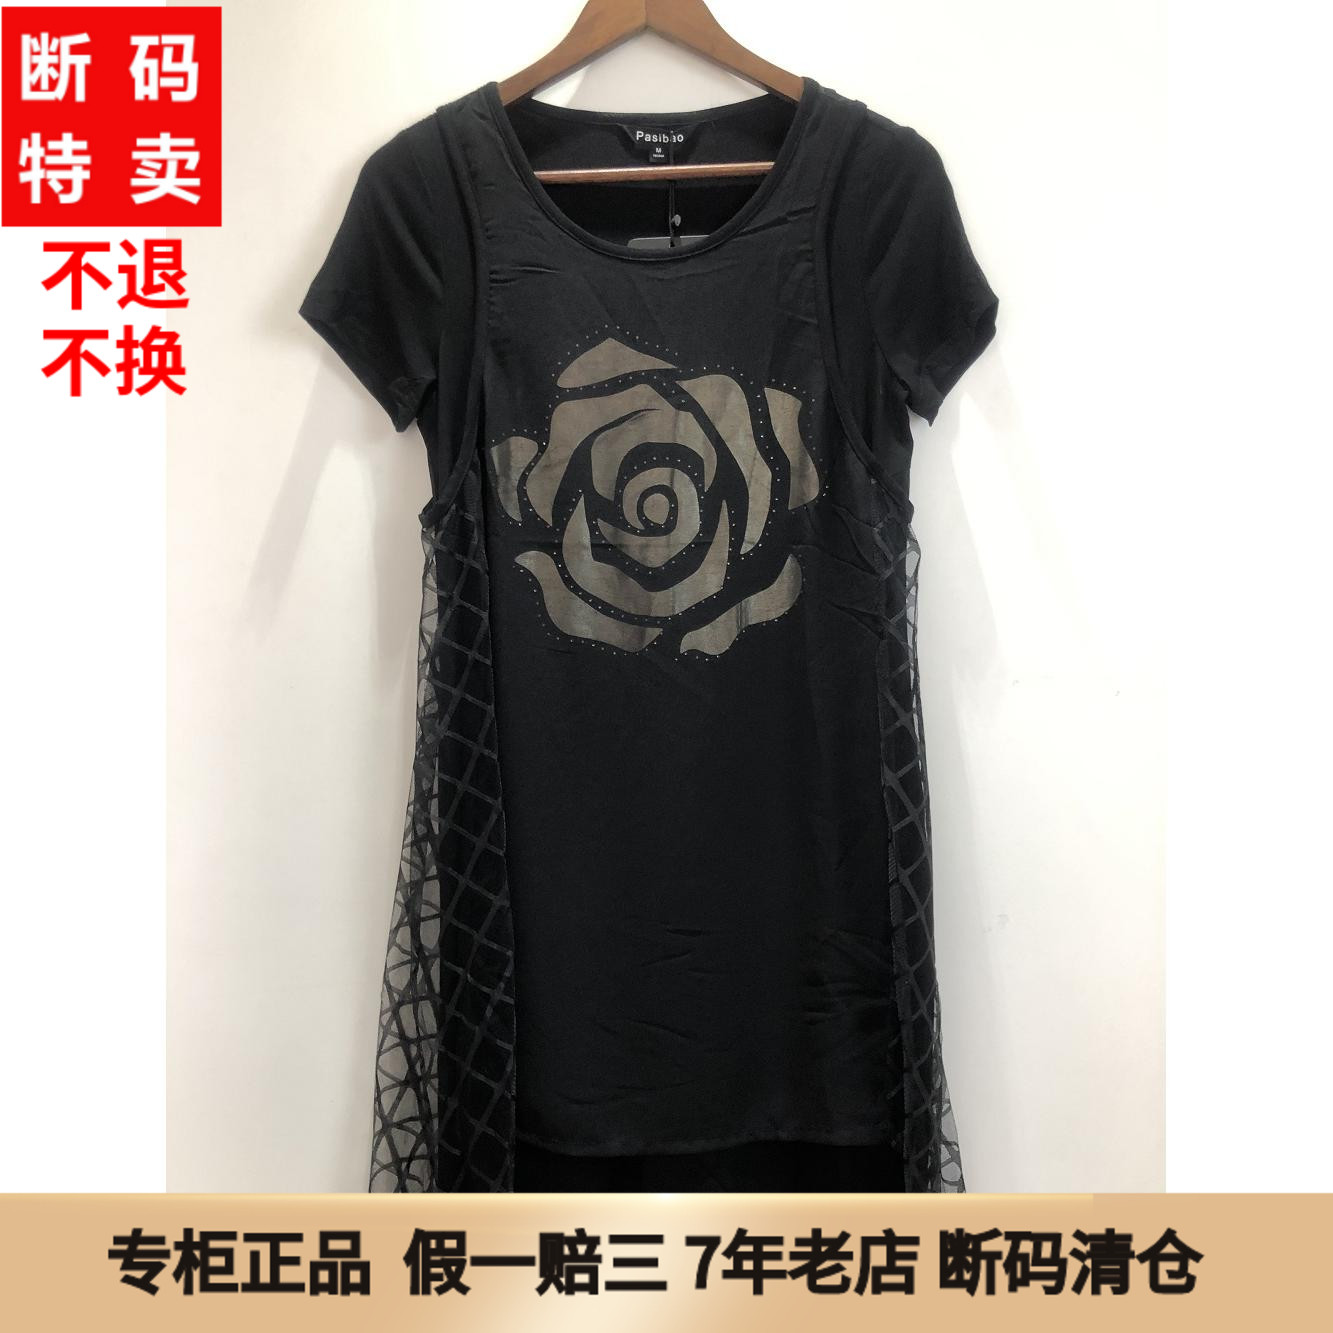 Paspo womens counter authentic 2021 new a021297 mesh splicing large loose and thin dress